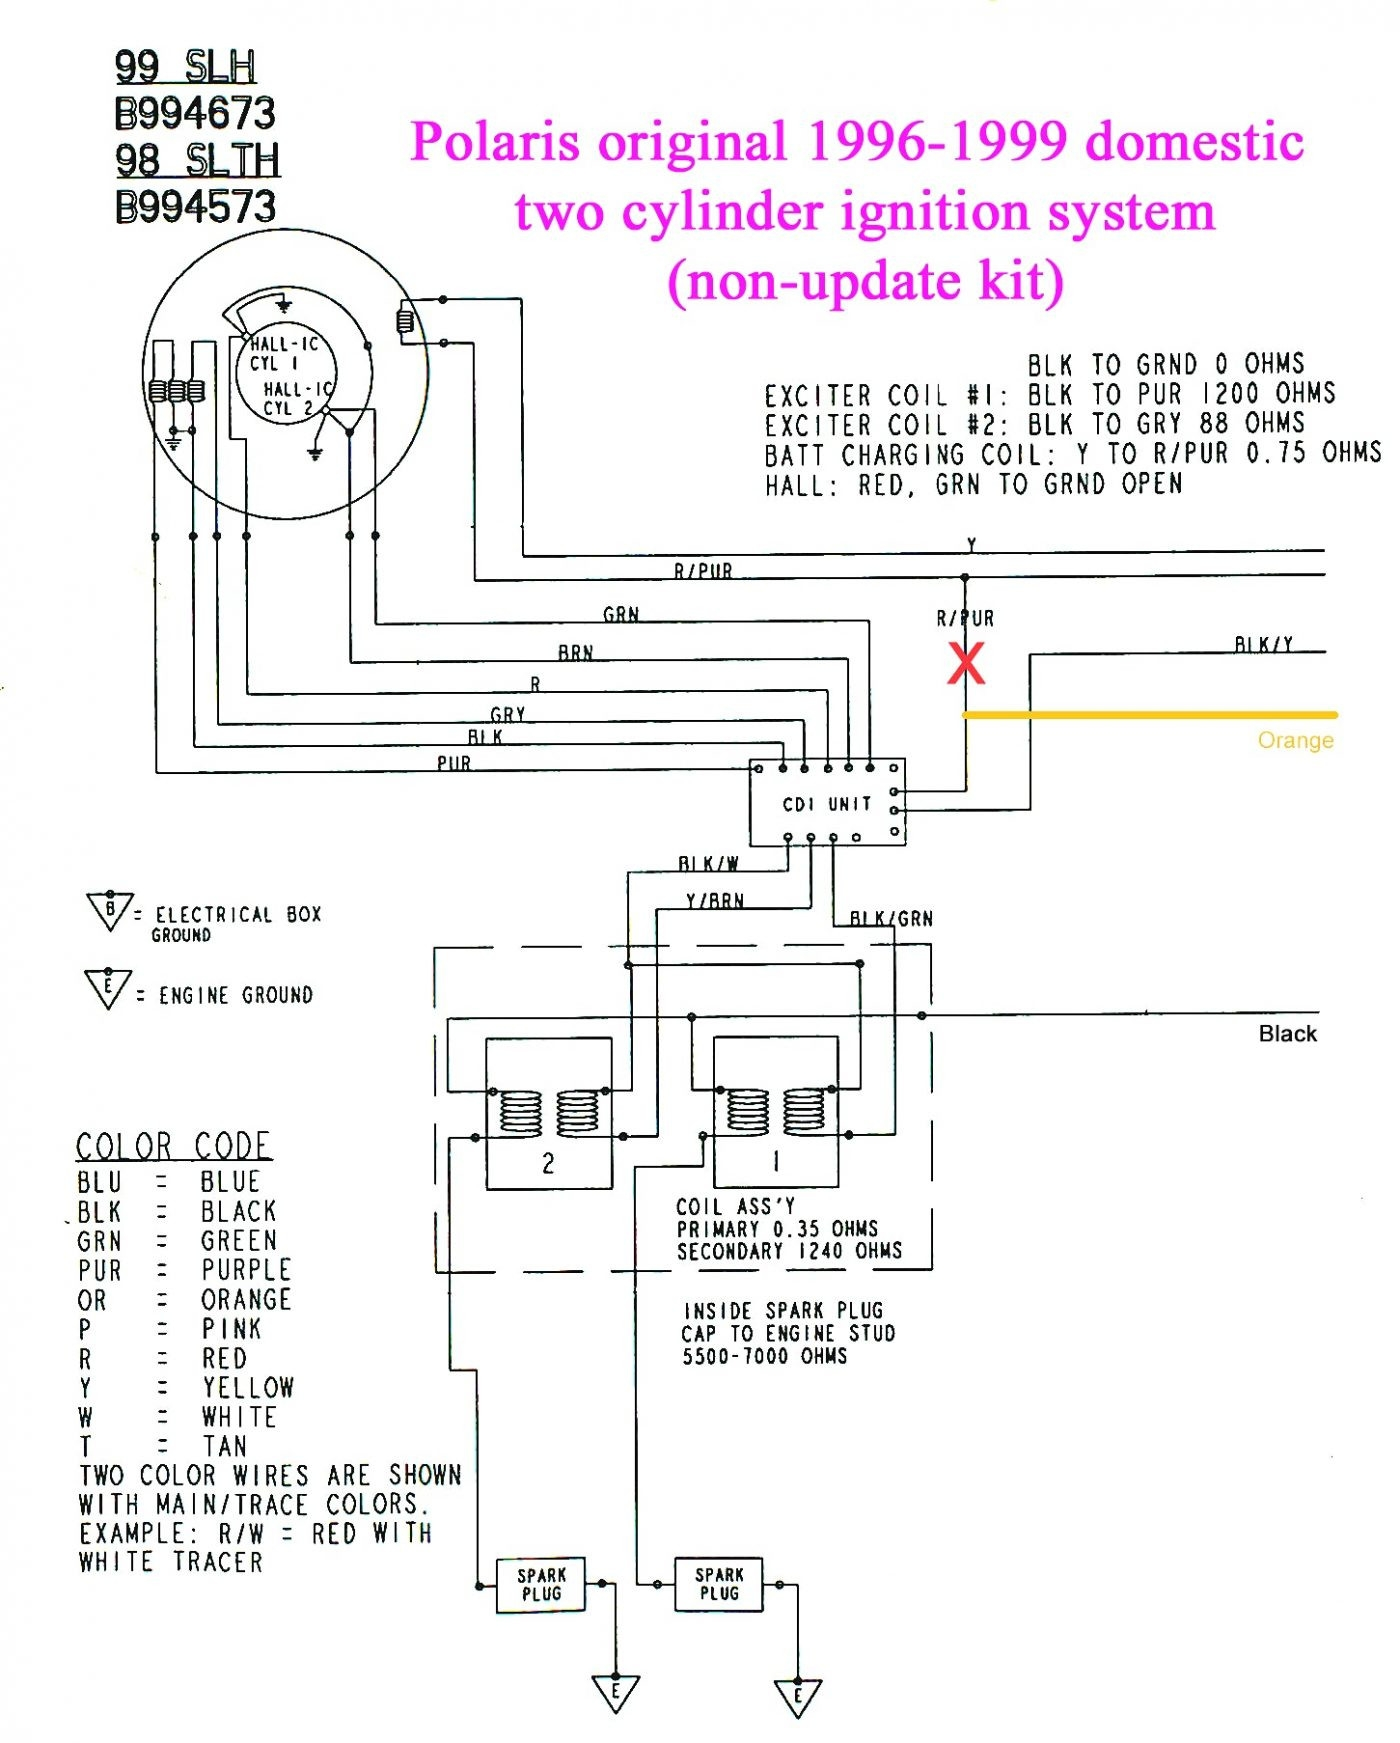 da lite motorized screen wiring diagram Collection-Da Lite Motorized Screen Wiring Diagram Valid Da Lite Motorized Screen Wiring Diagram Elegant Da Lite 19-o